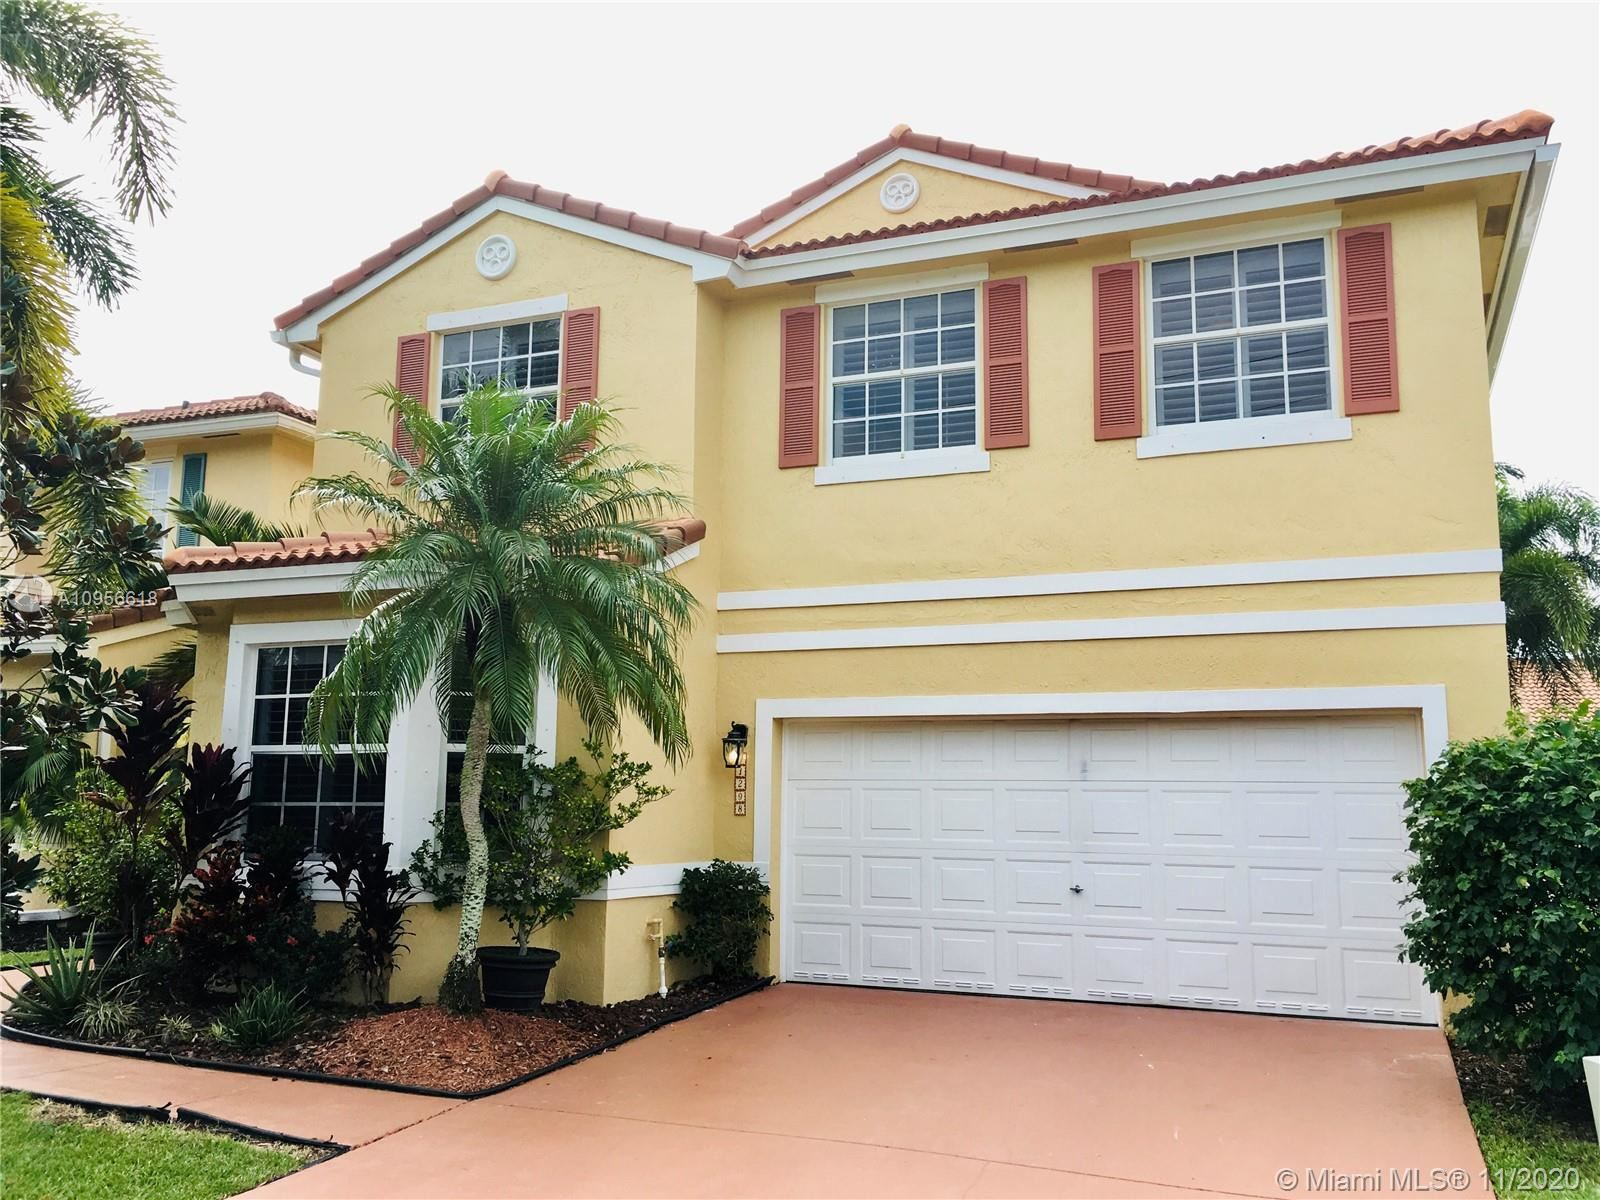 11298 NW 46th Dr, Coral Springs, FL 33076 - #: A10956618